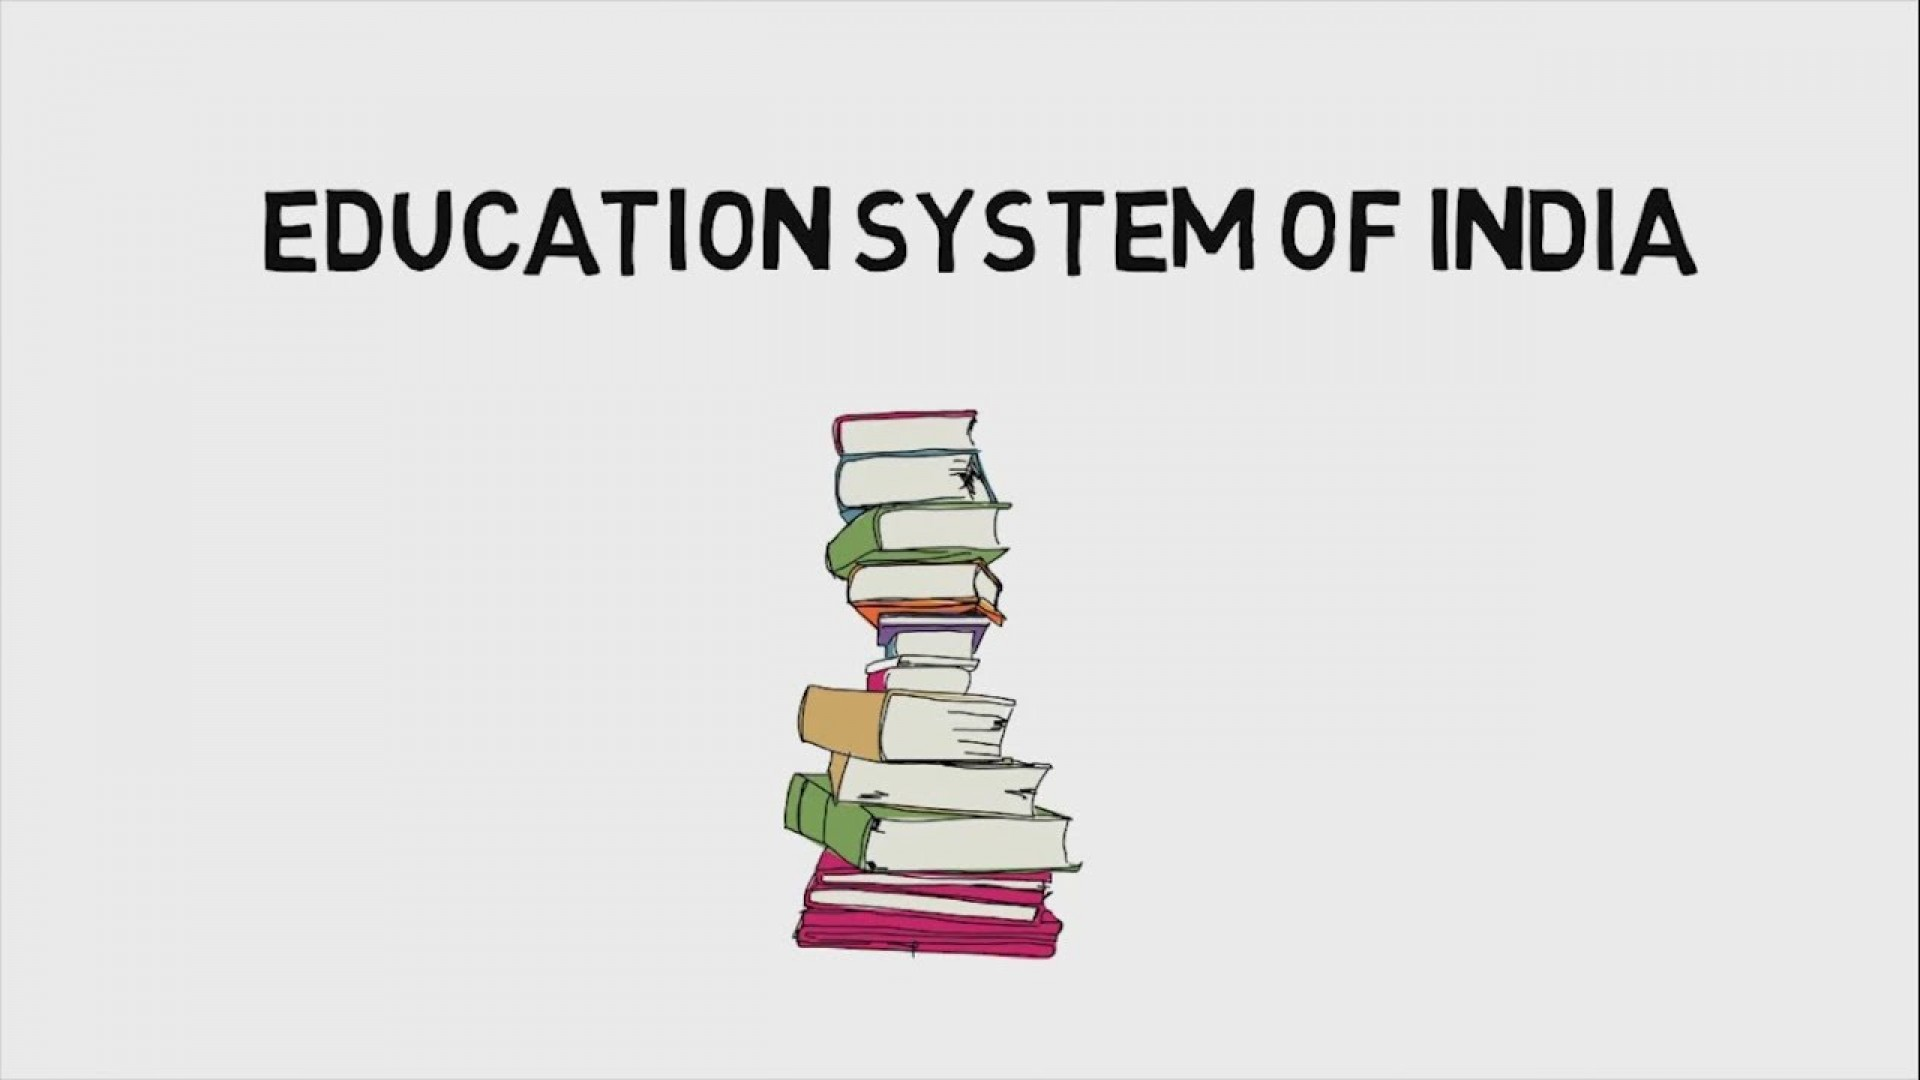 002 Essay On Education System In India And Abroad Maxresdefault Research Magnificent 1920